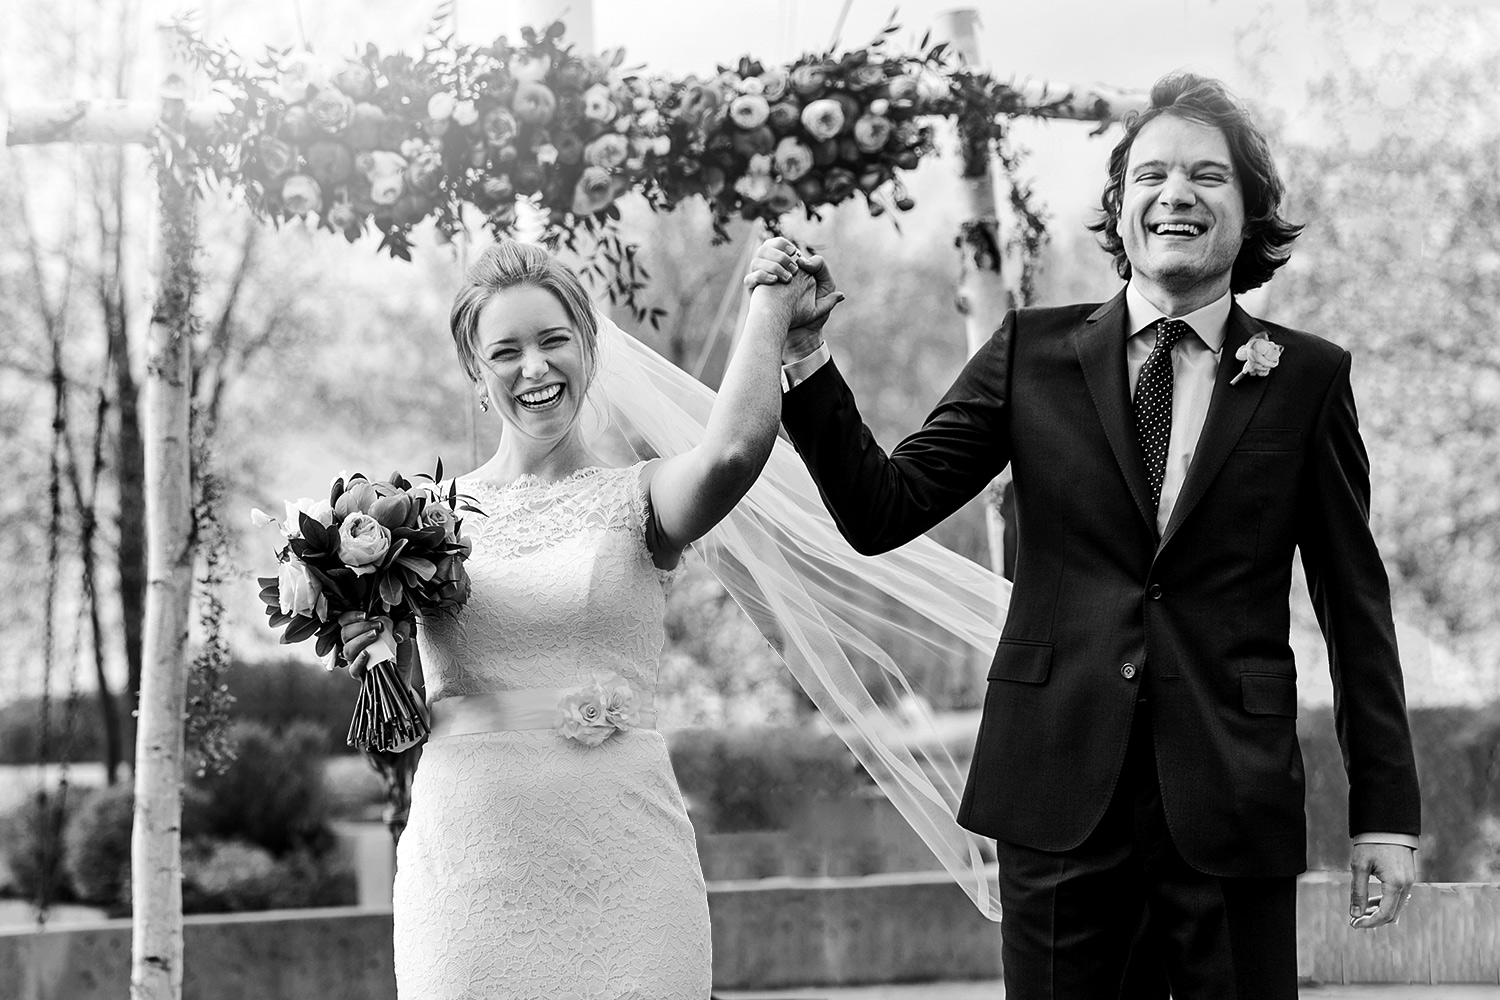 wedding photograph of a happy bride and groom having just been pronounced husband and wife